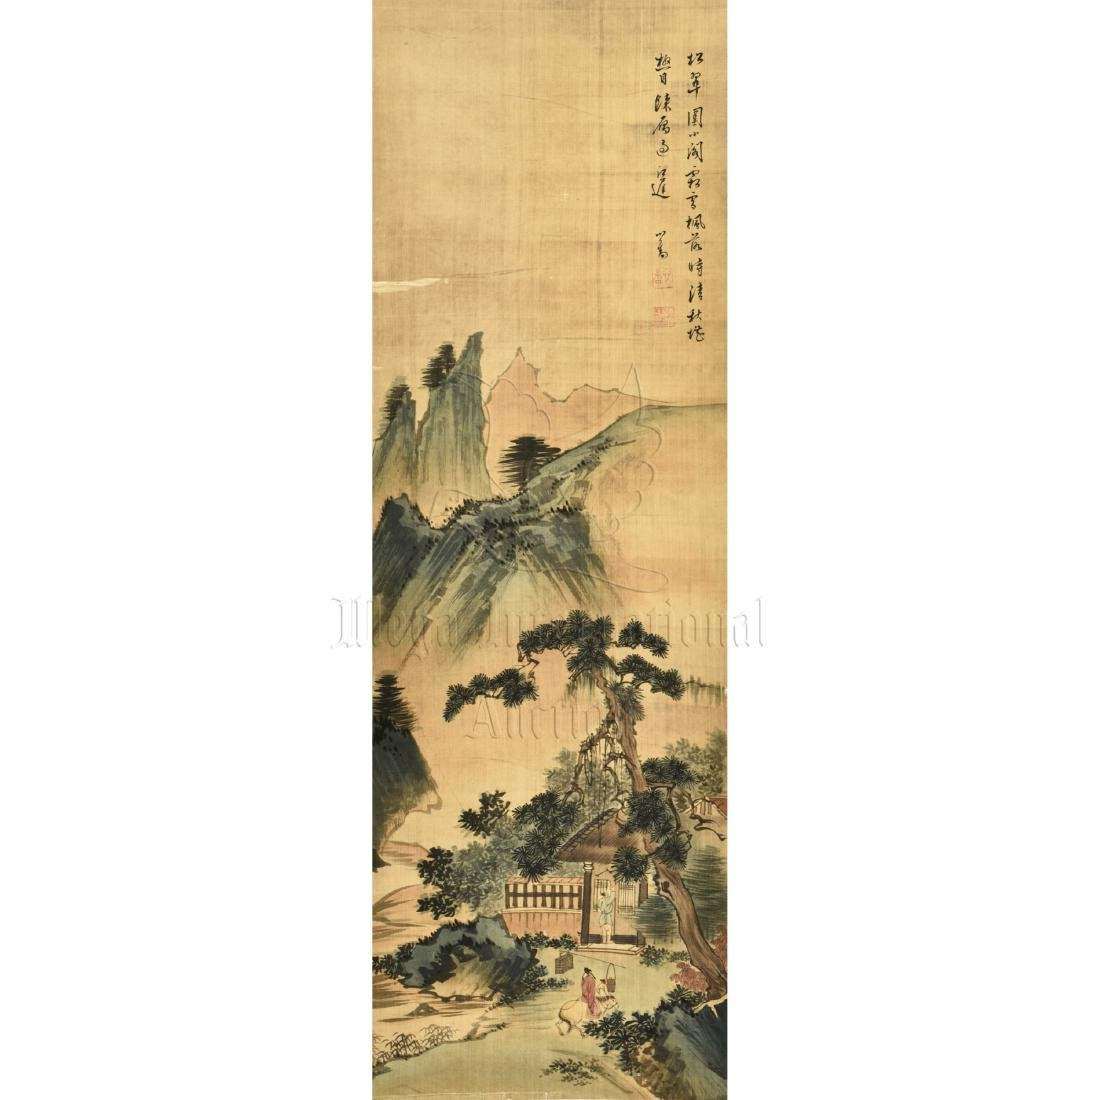 PU XINYU: INK AND COLOR ON SILK PAINTING 'LANDSCAPE